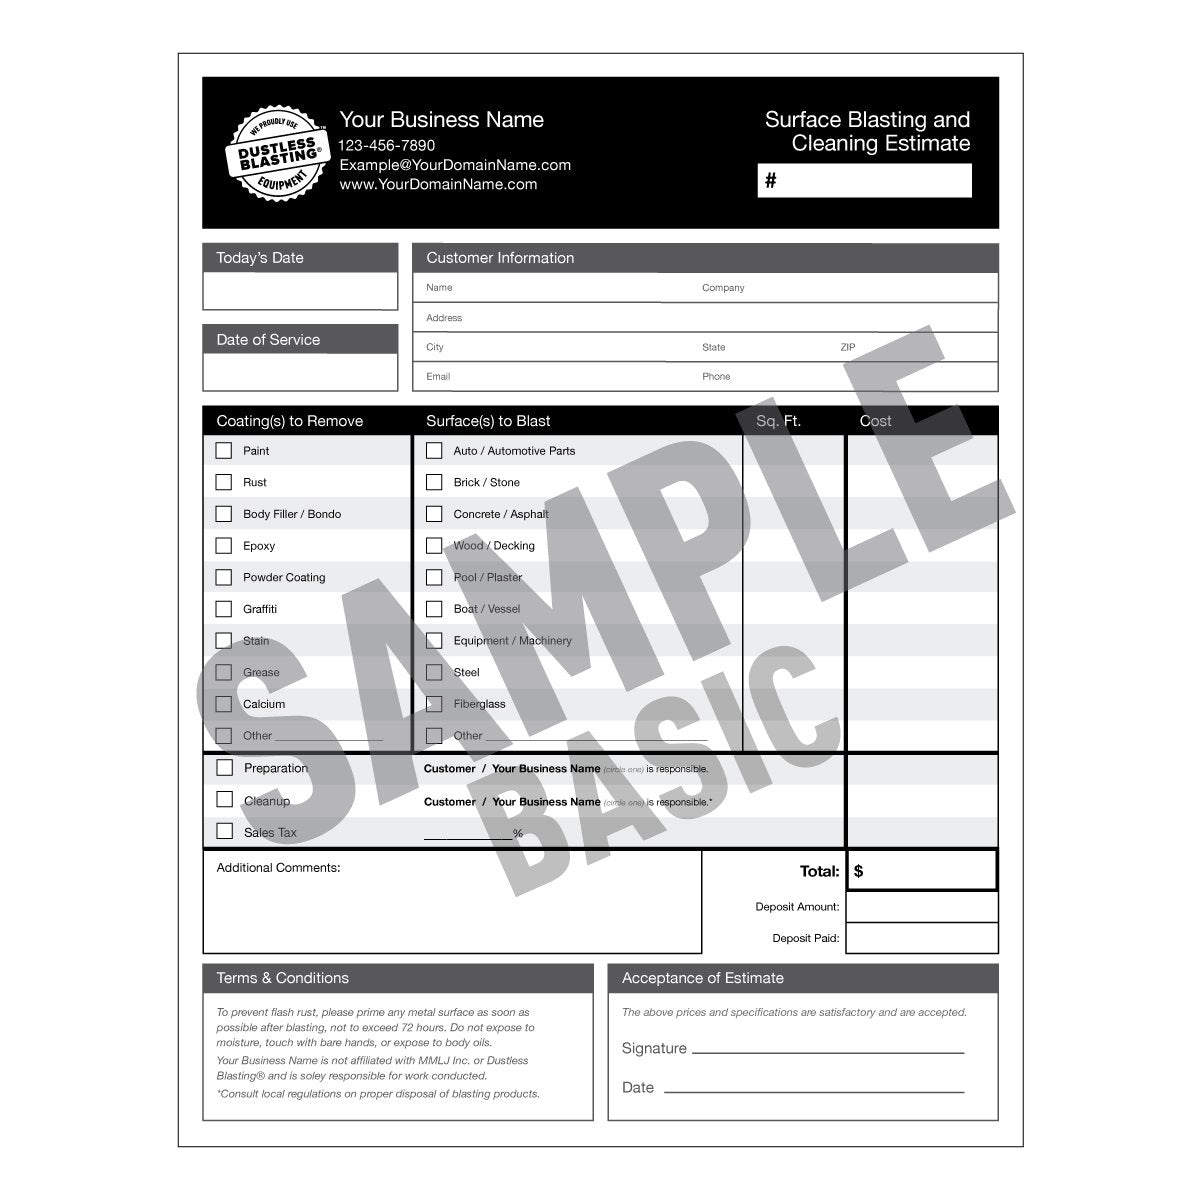 Standard Printed Marketing Bundle - Business Cards, Rack Cards, and Quote Forms!